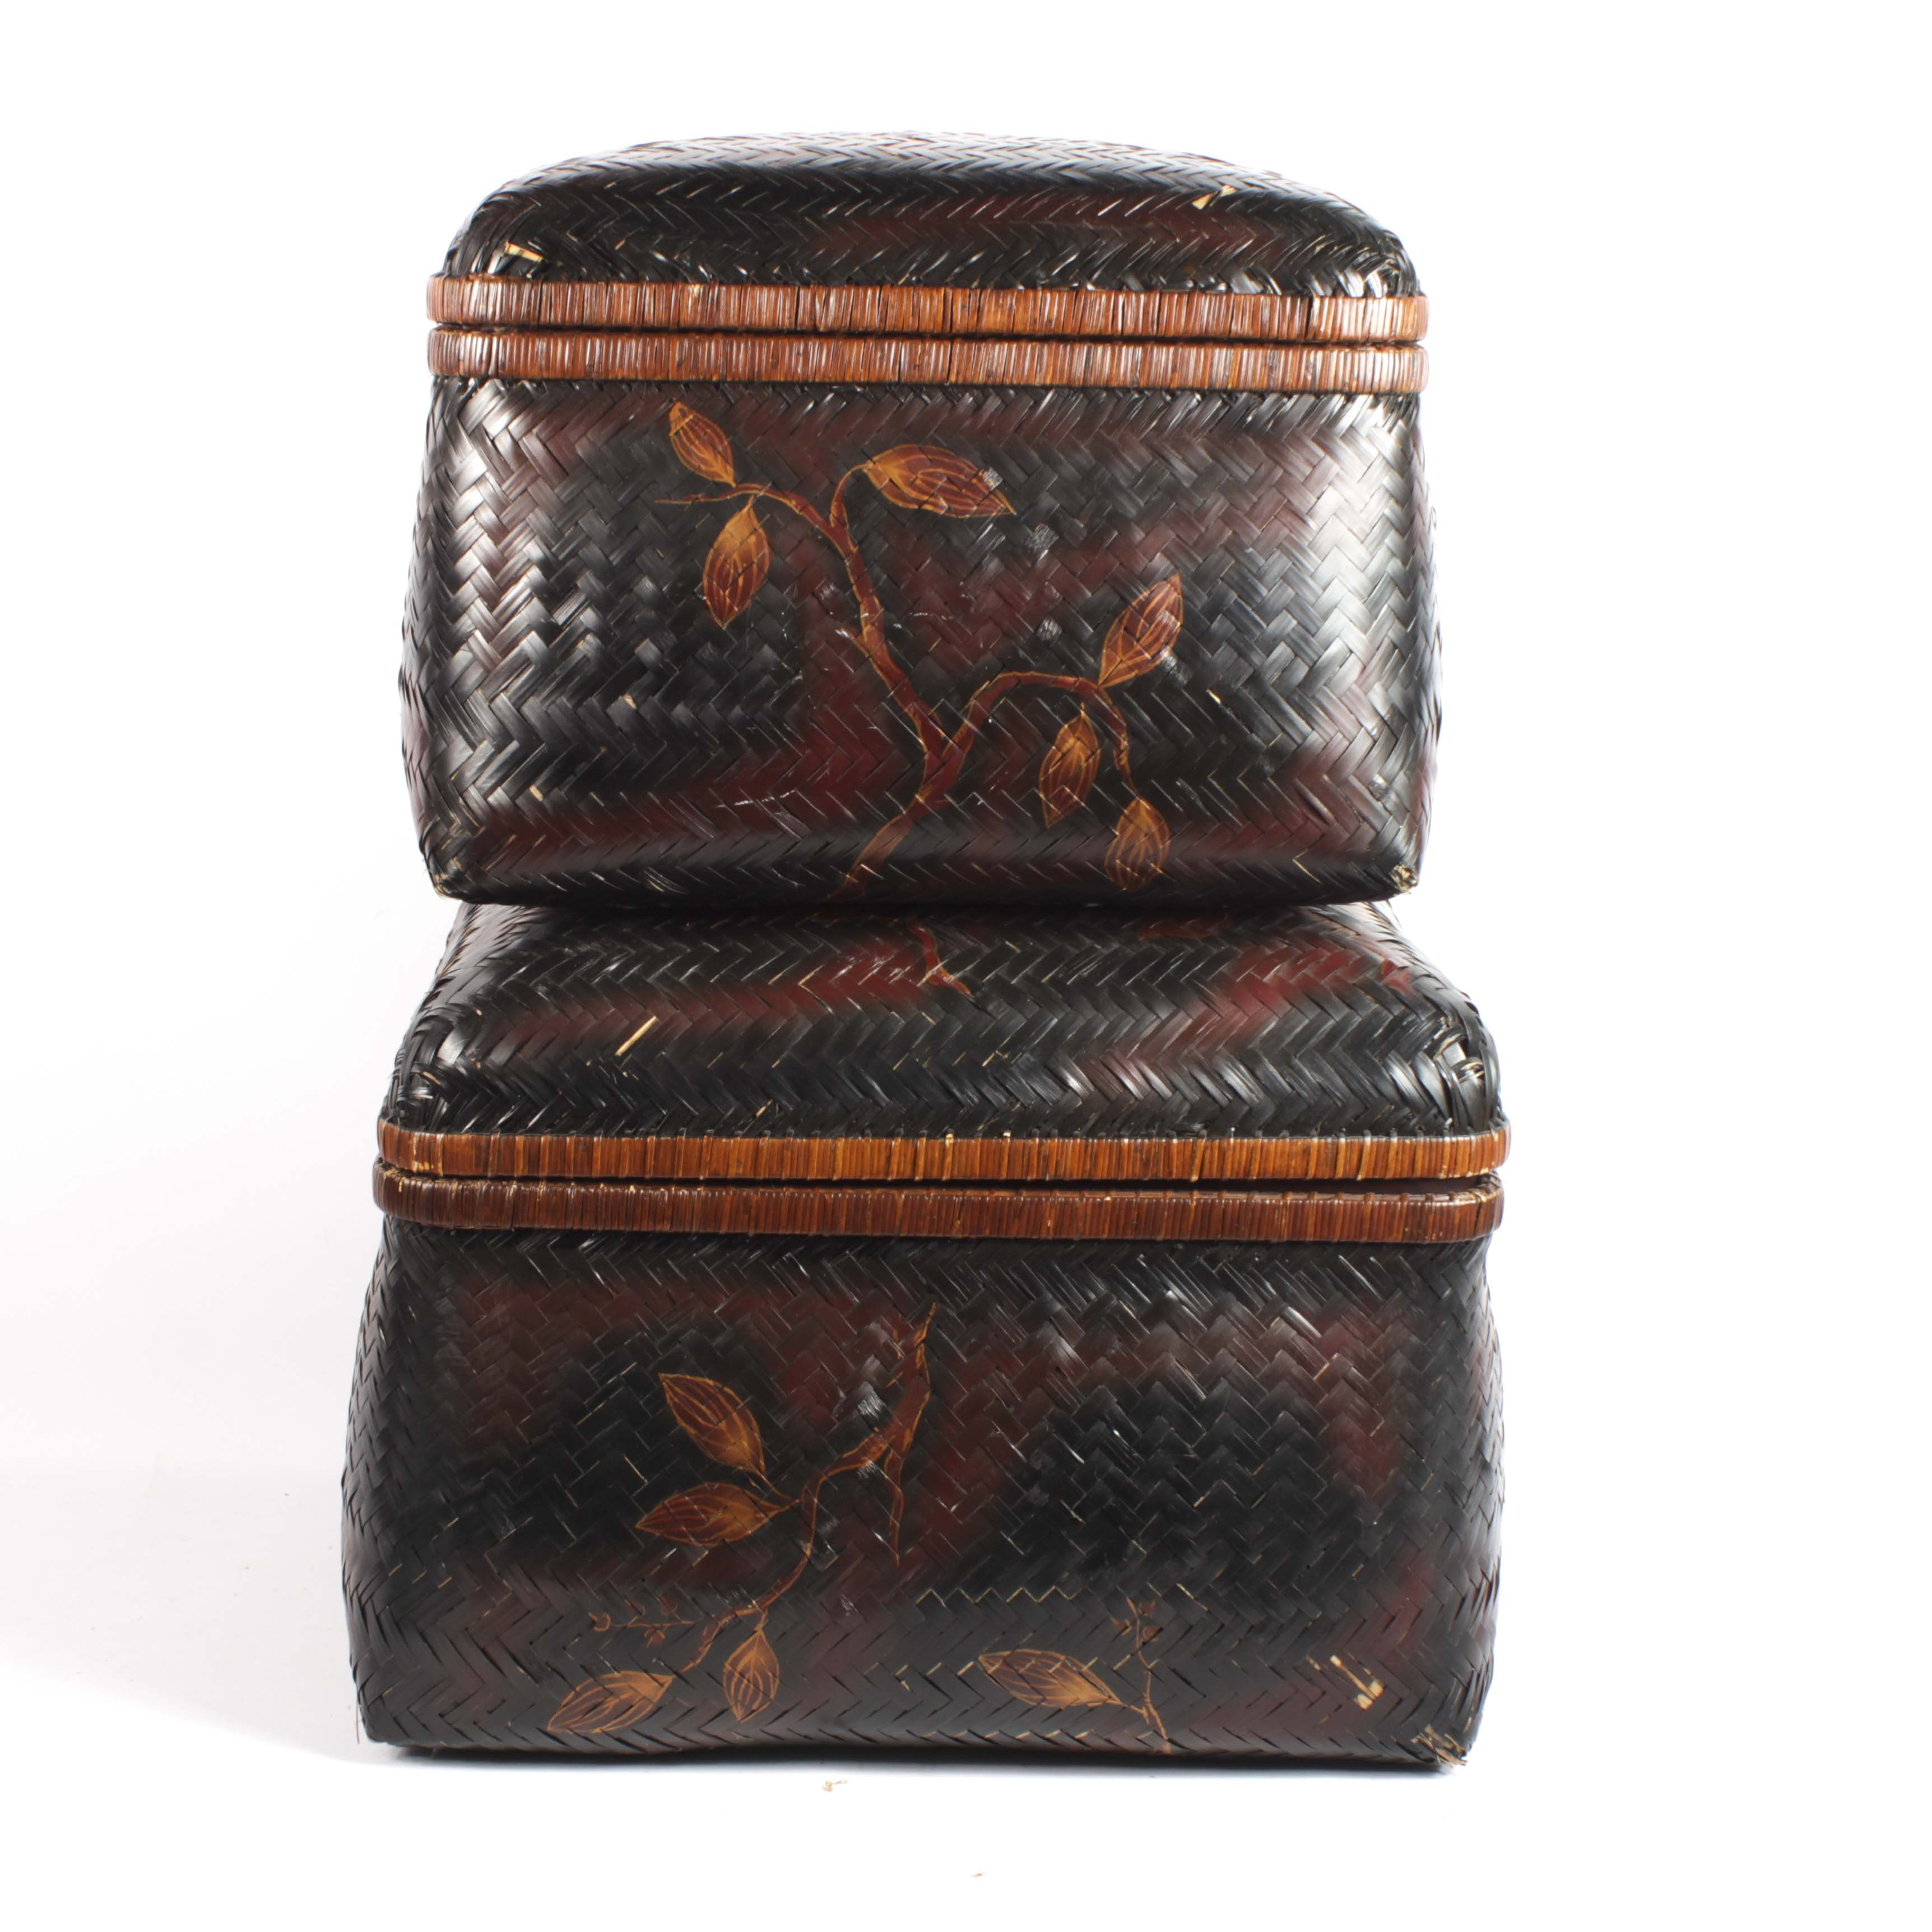 Hand Painted Chinese Nesting Baskets